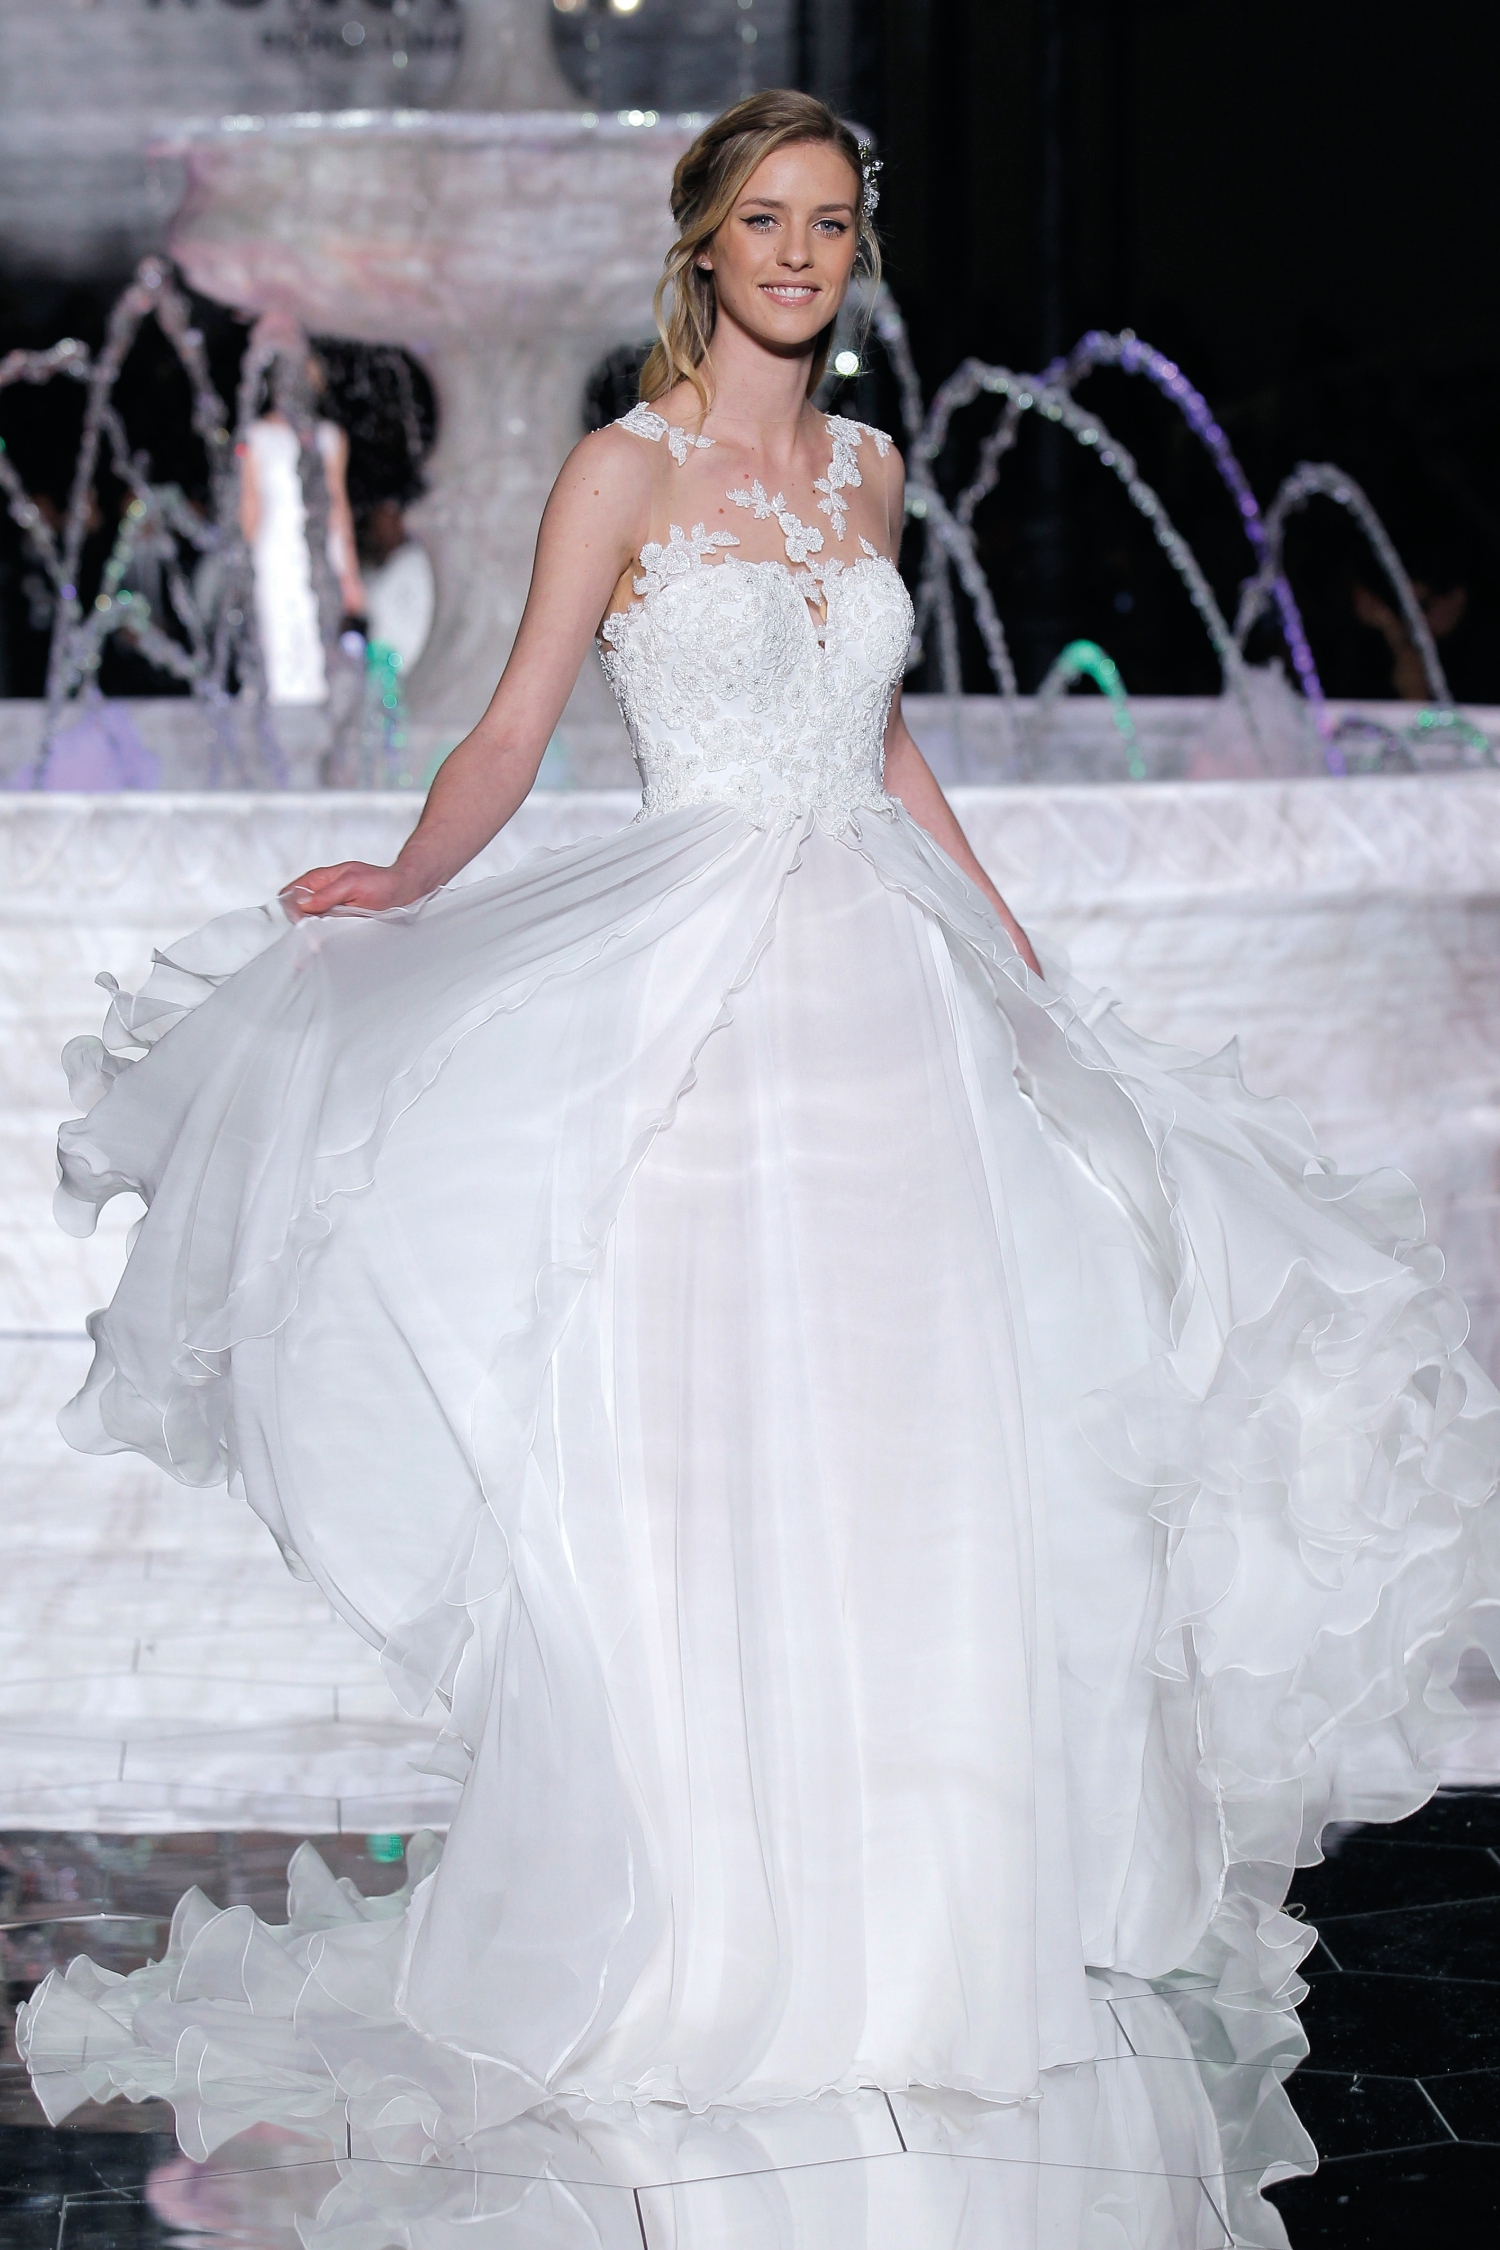 1-PRONOVIAS FASHION SHOW_Risal